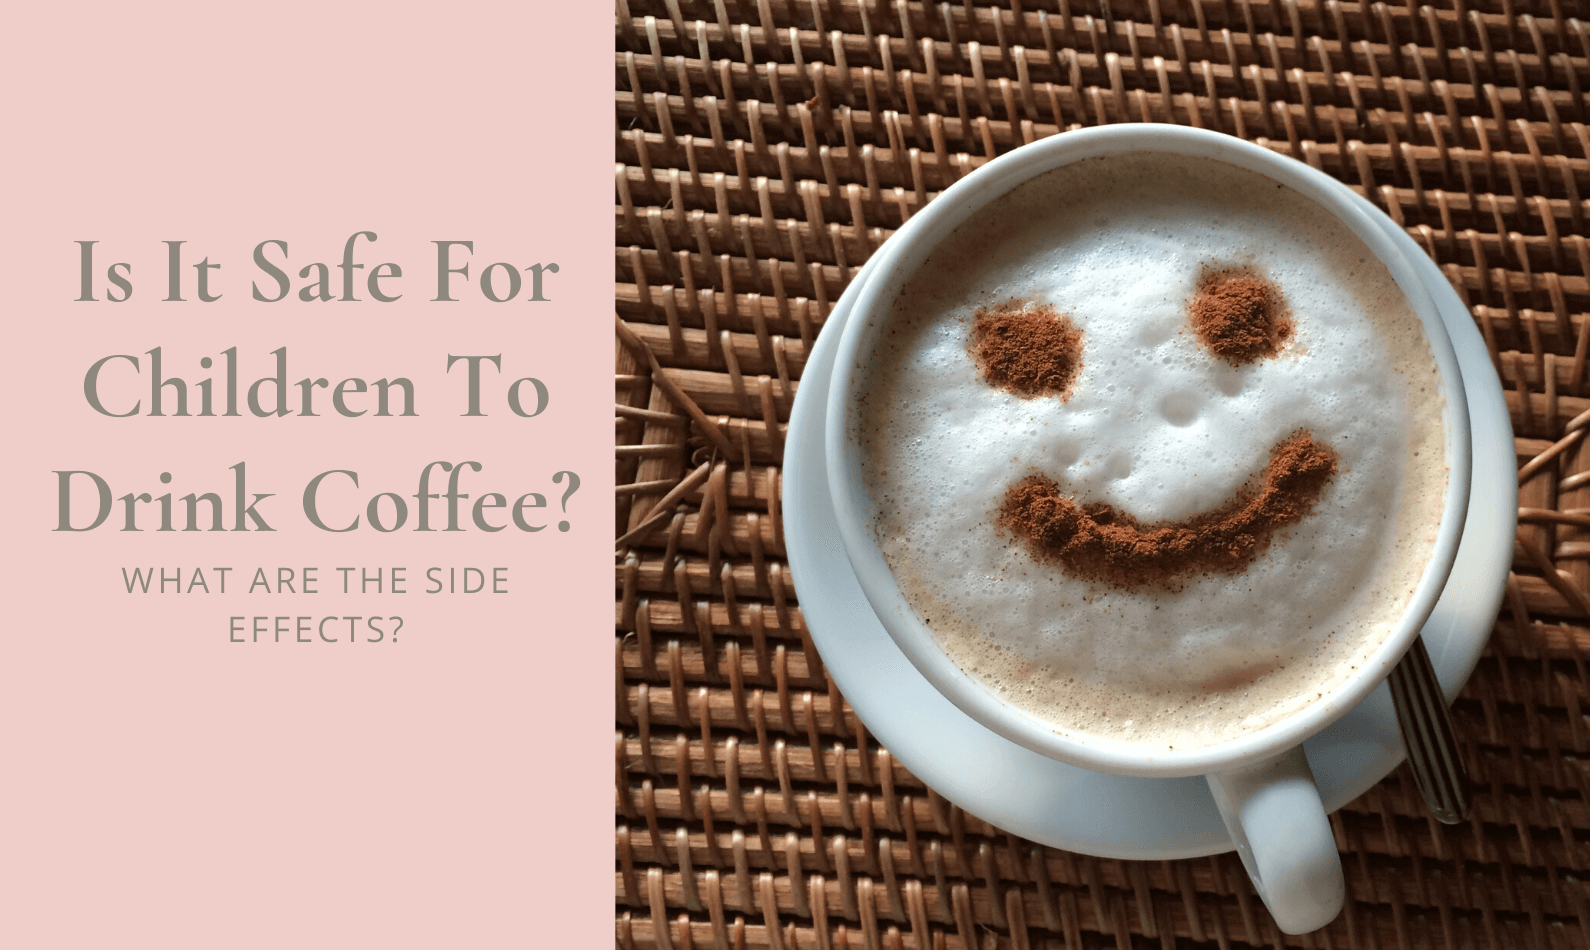 Is It Safe For Children To Drink Coffee